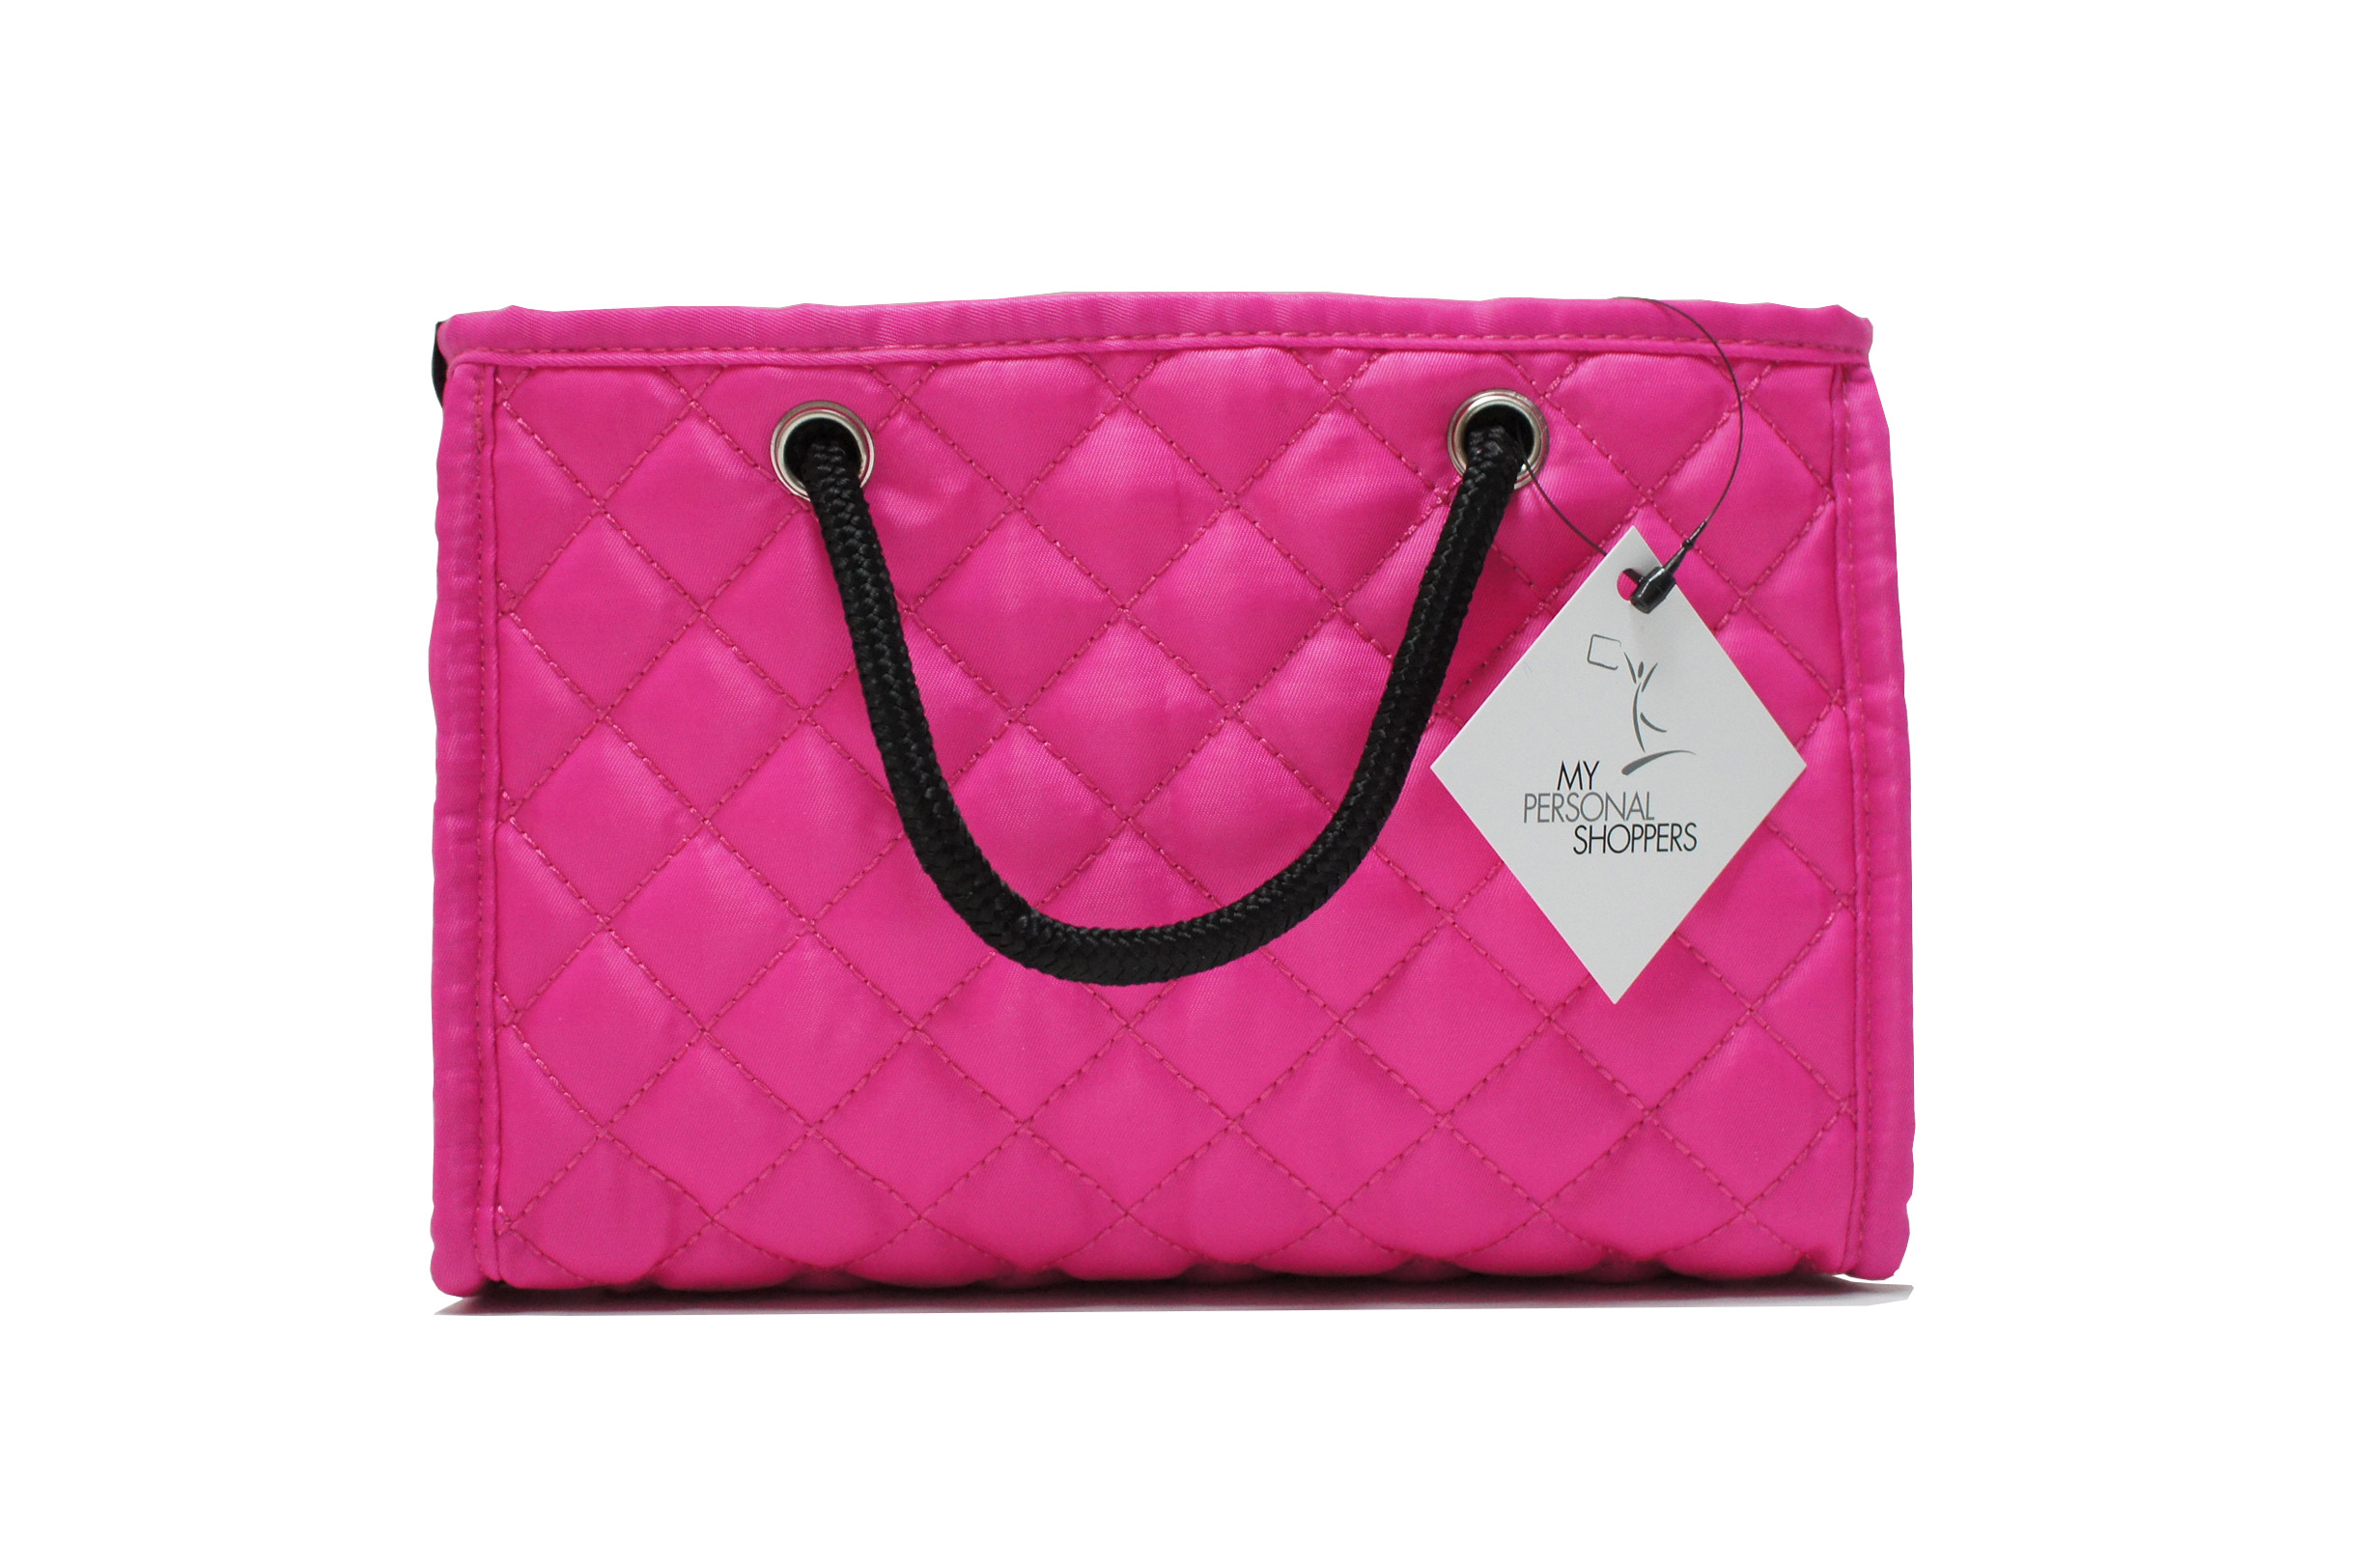 6fda41d612d3f Zoe Quilted Handbag Organizer Insert with Removable Base (Small ...